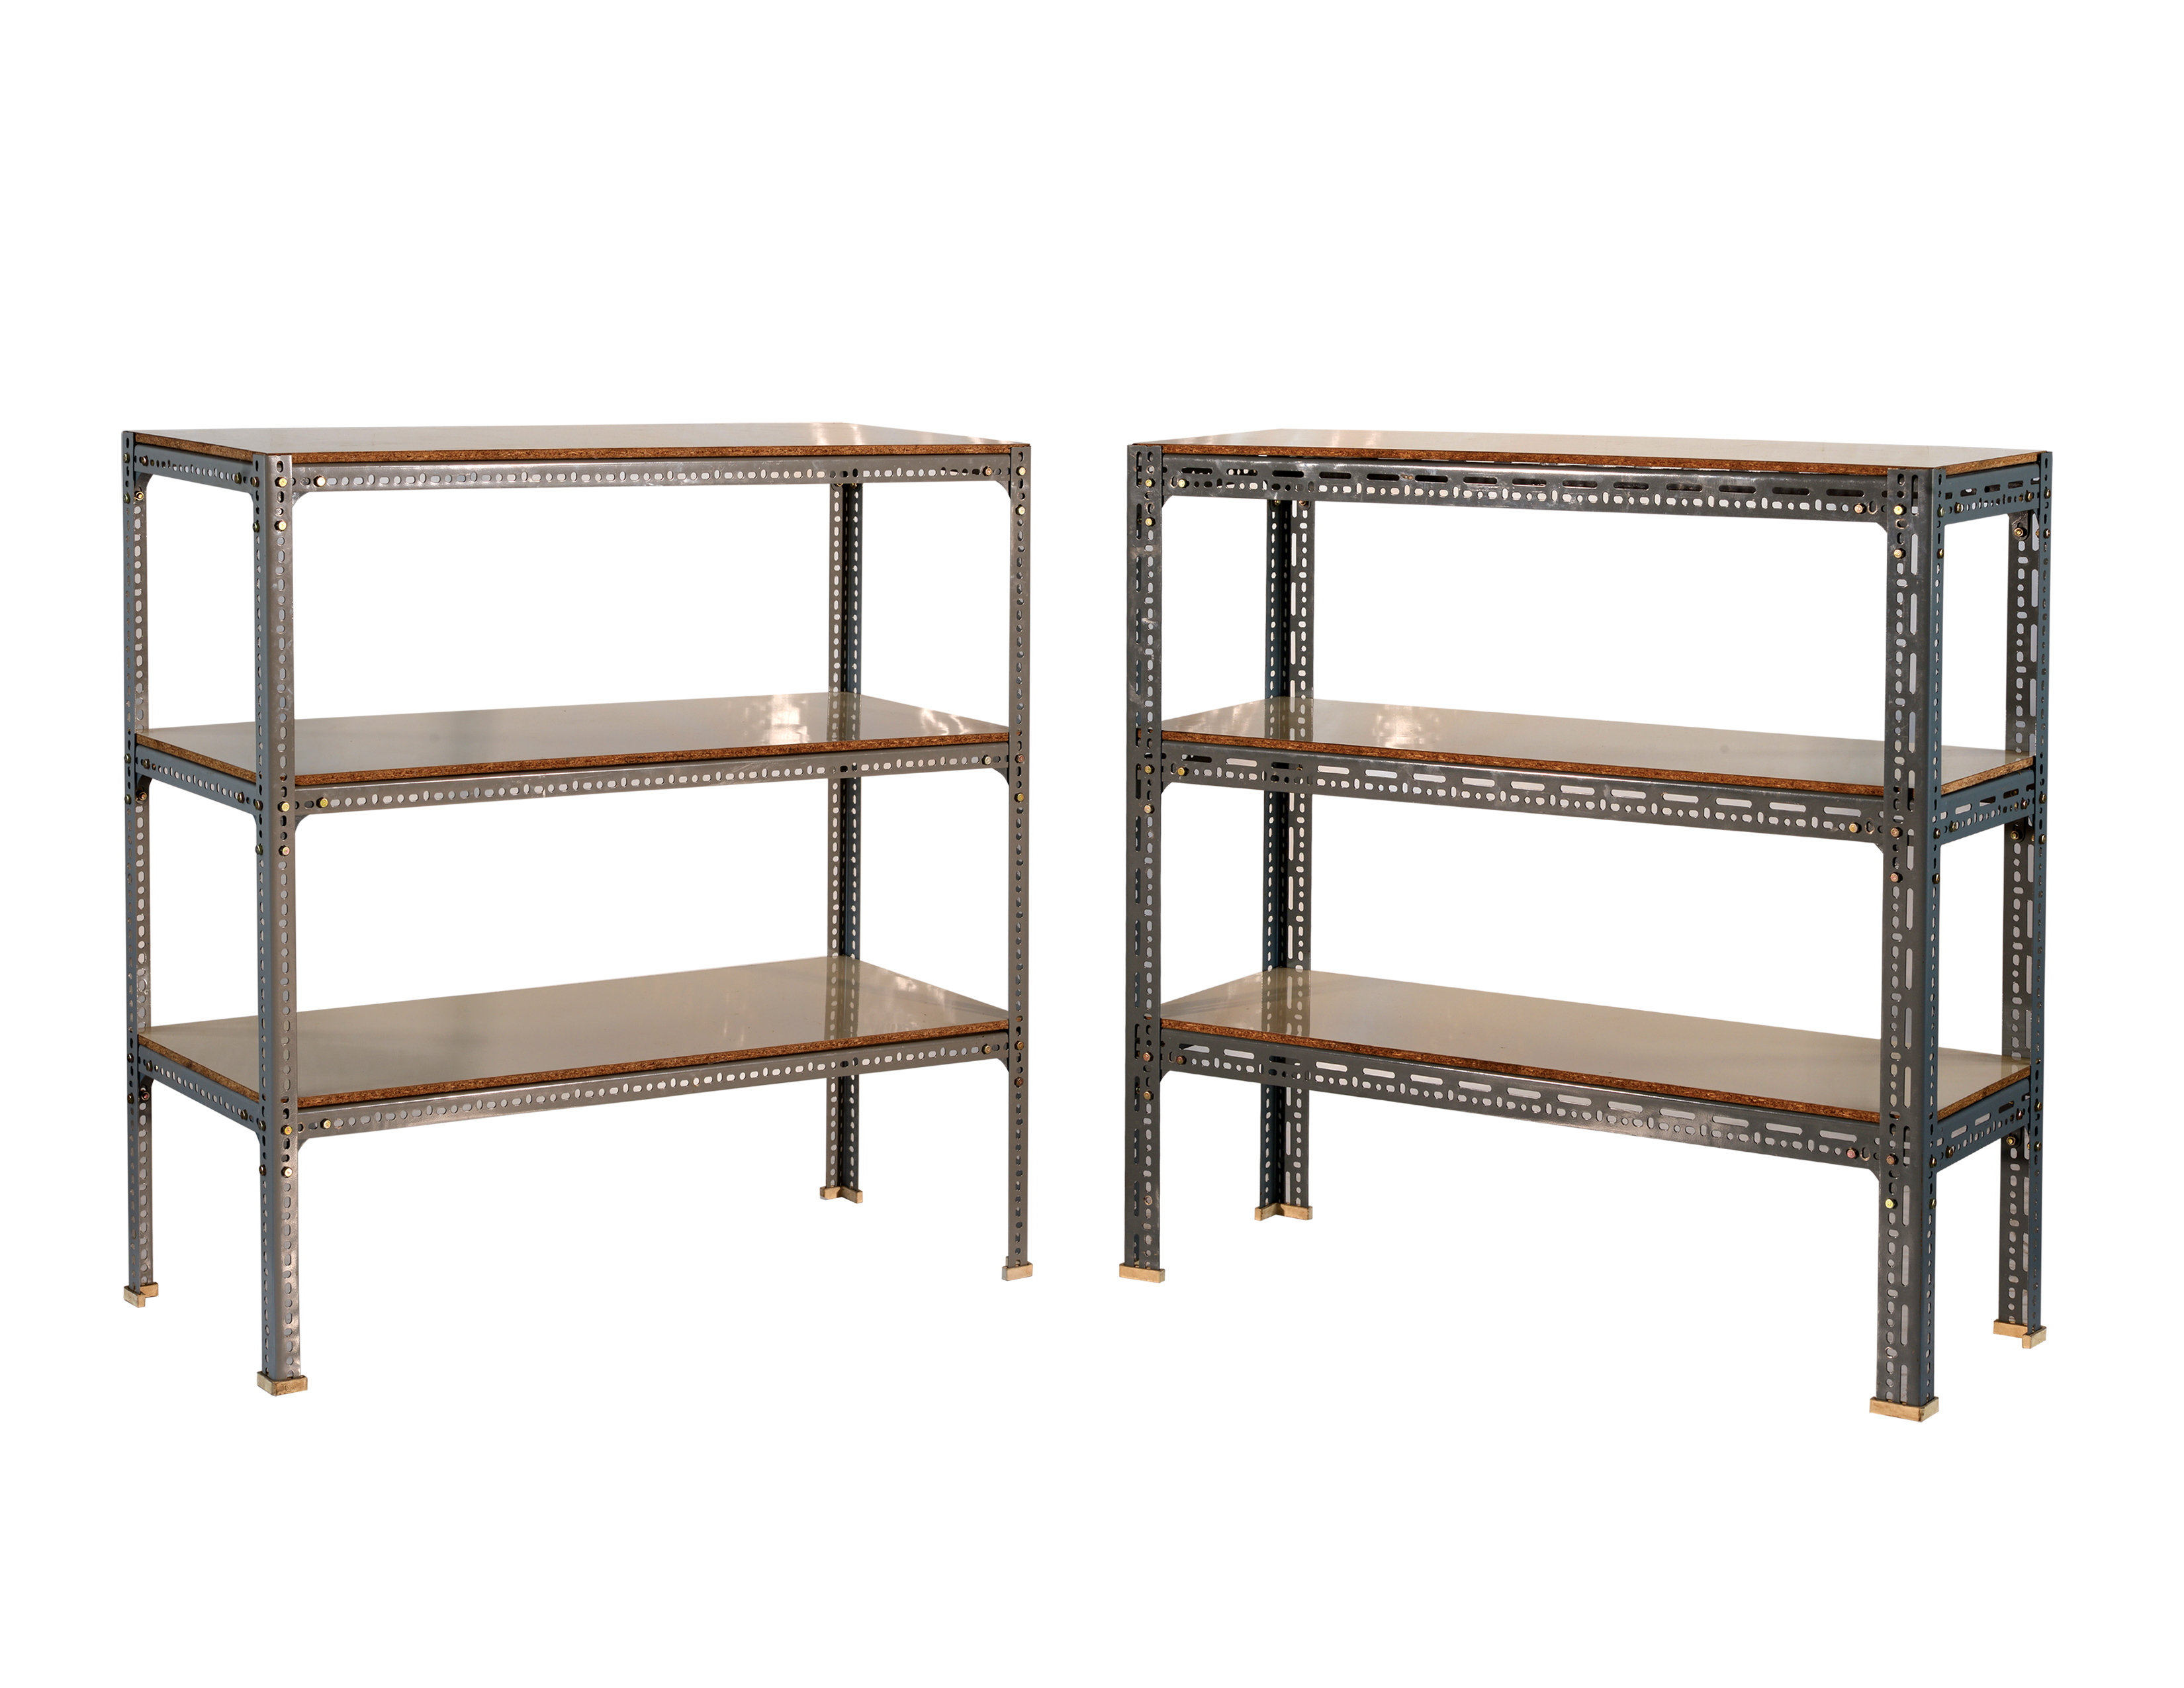 Slotted Angle Racks In The Philippines Suerte Steel